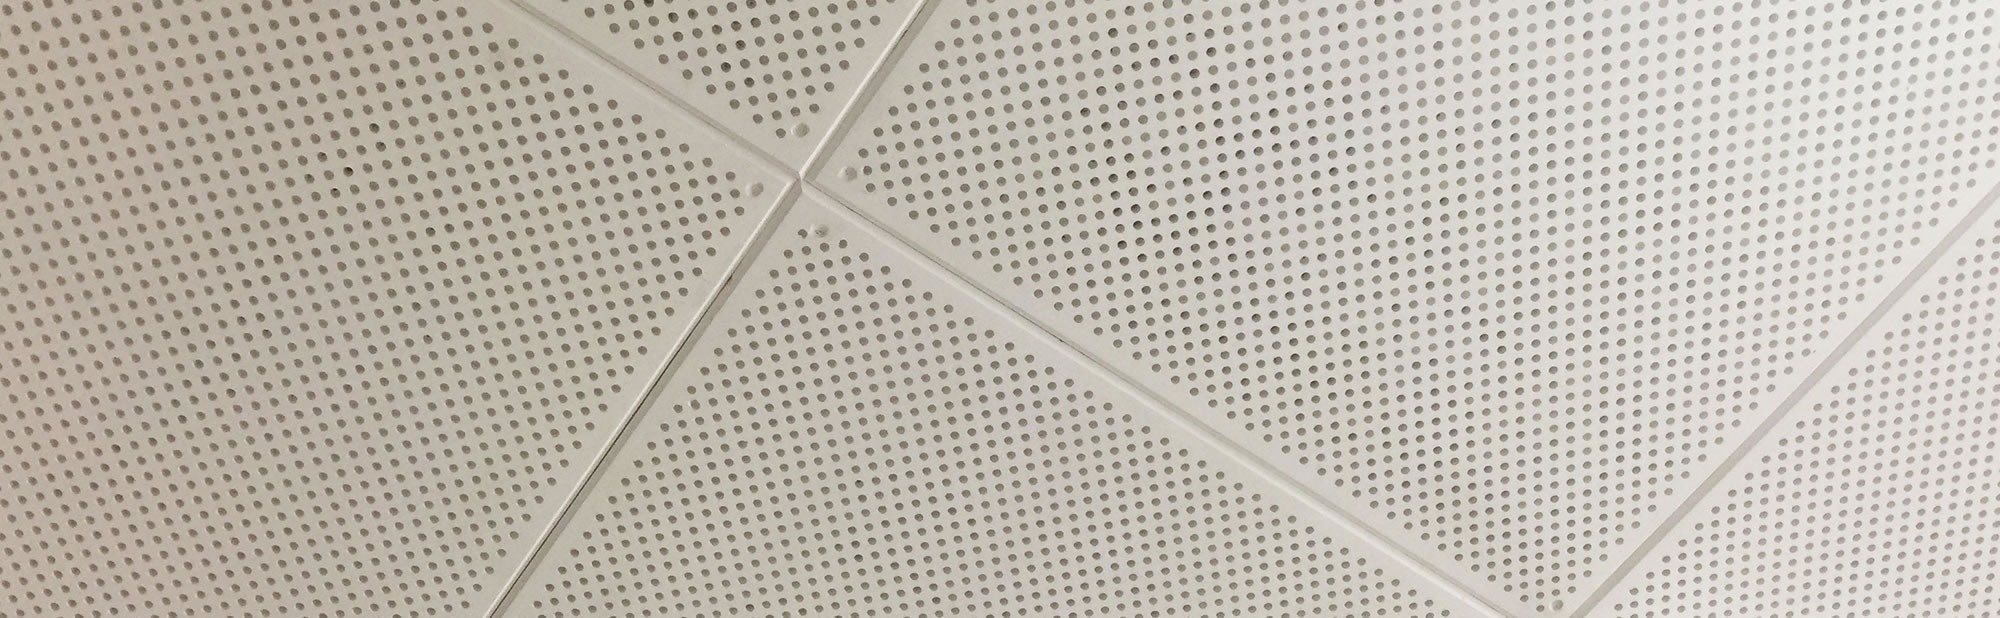 EcoCheck Screw Up Acoustic Ceiling Tiles | Australian